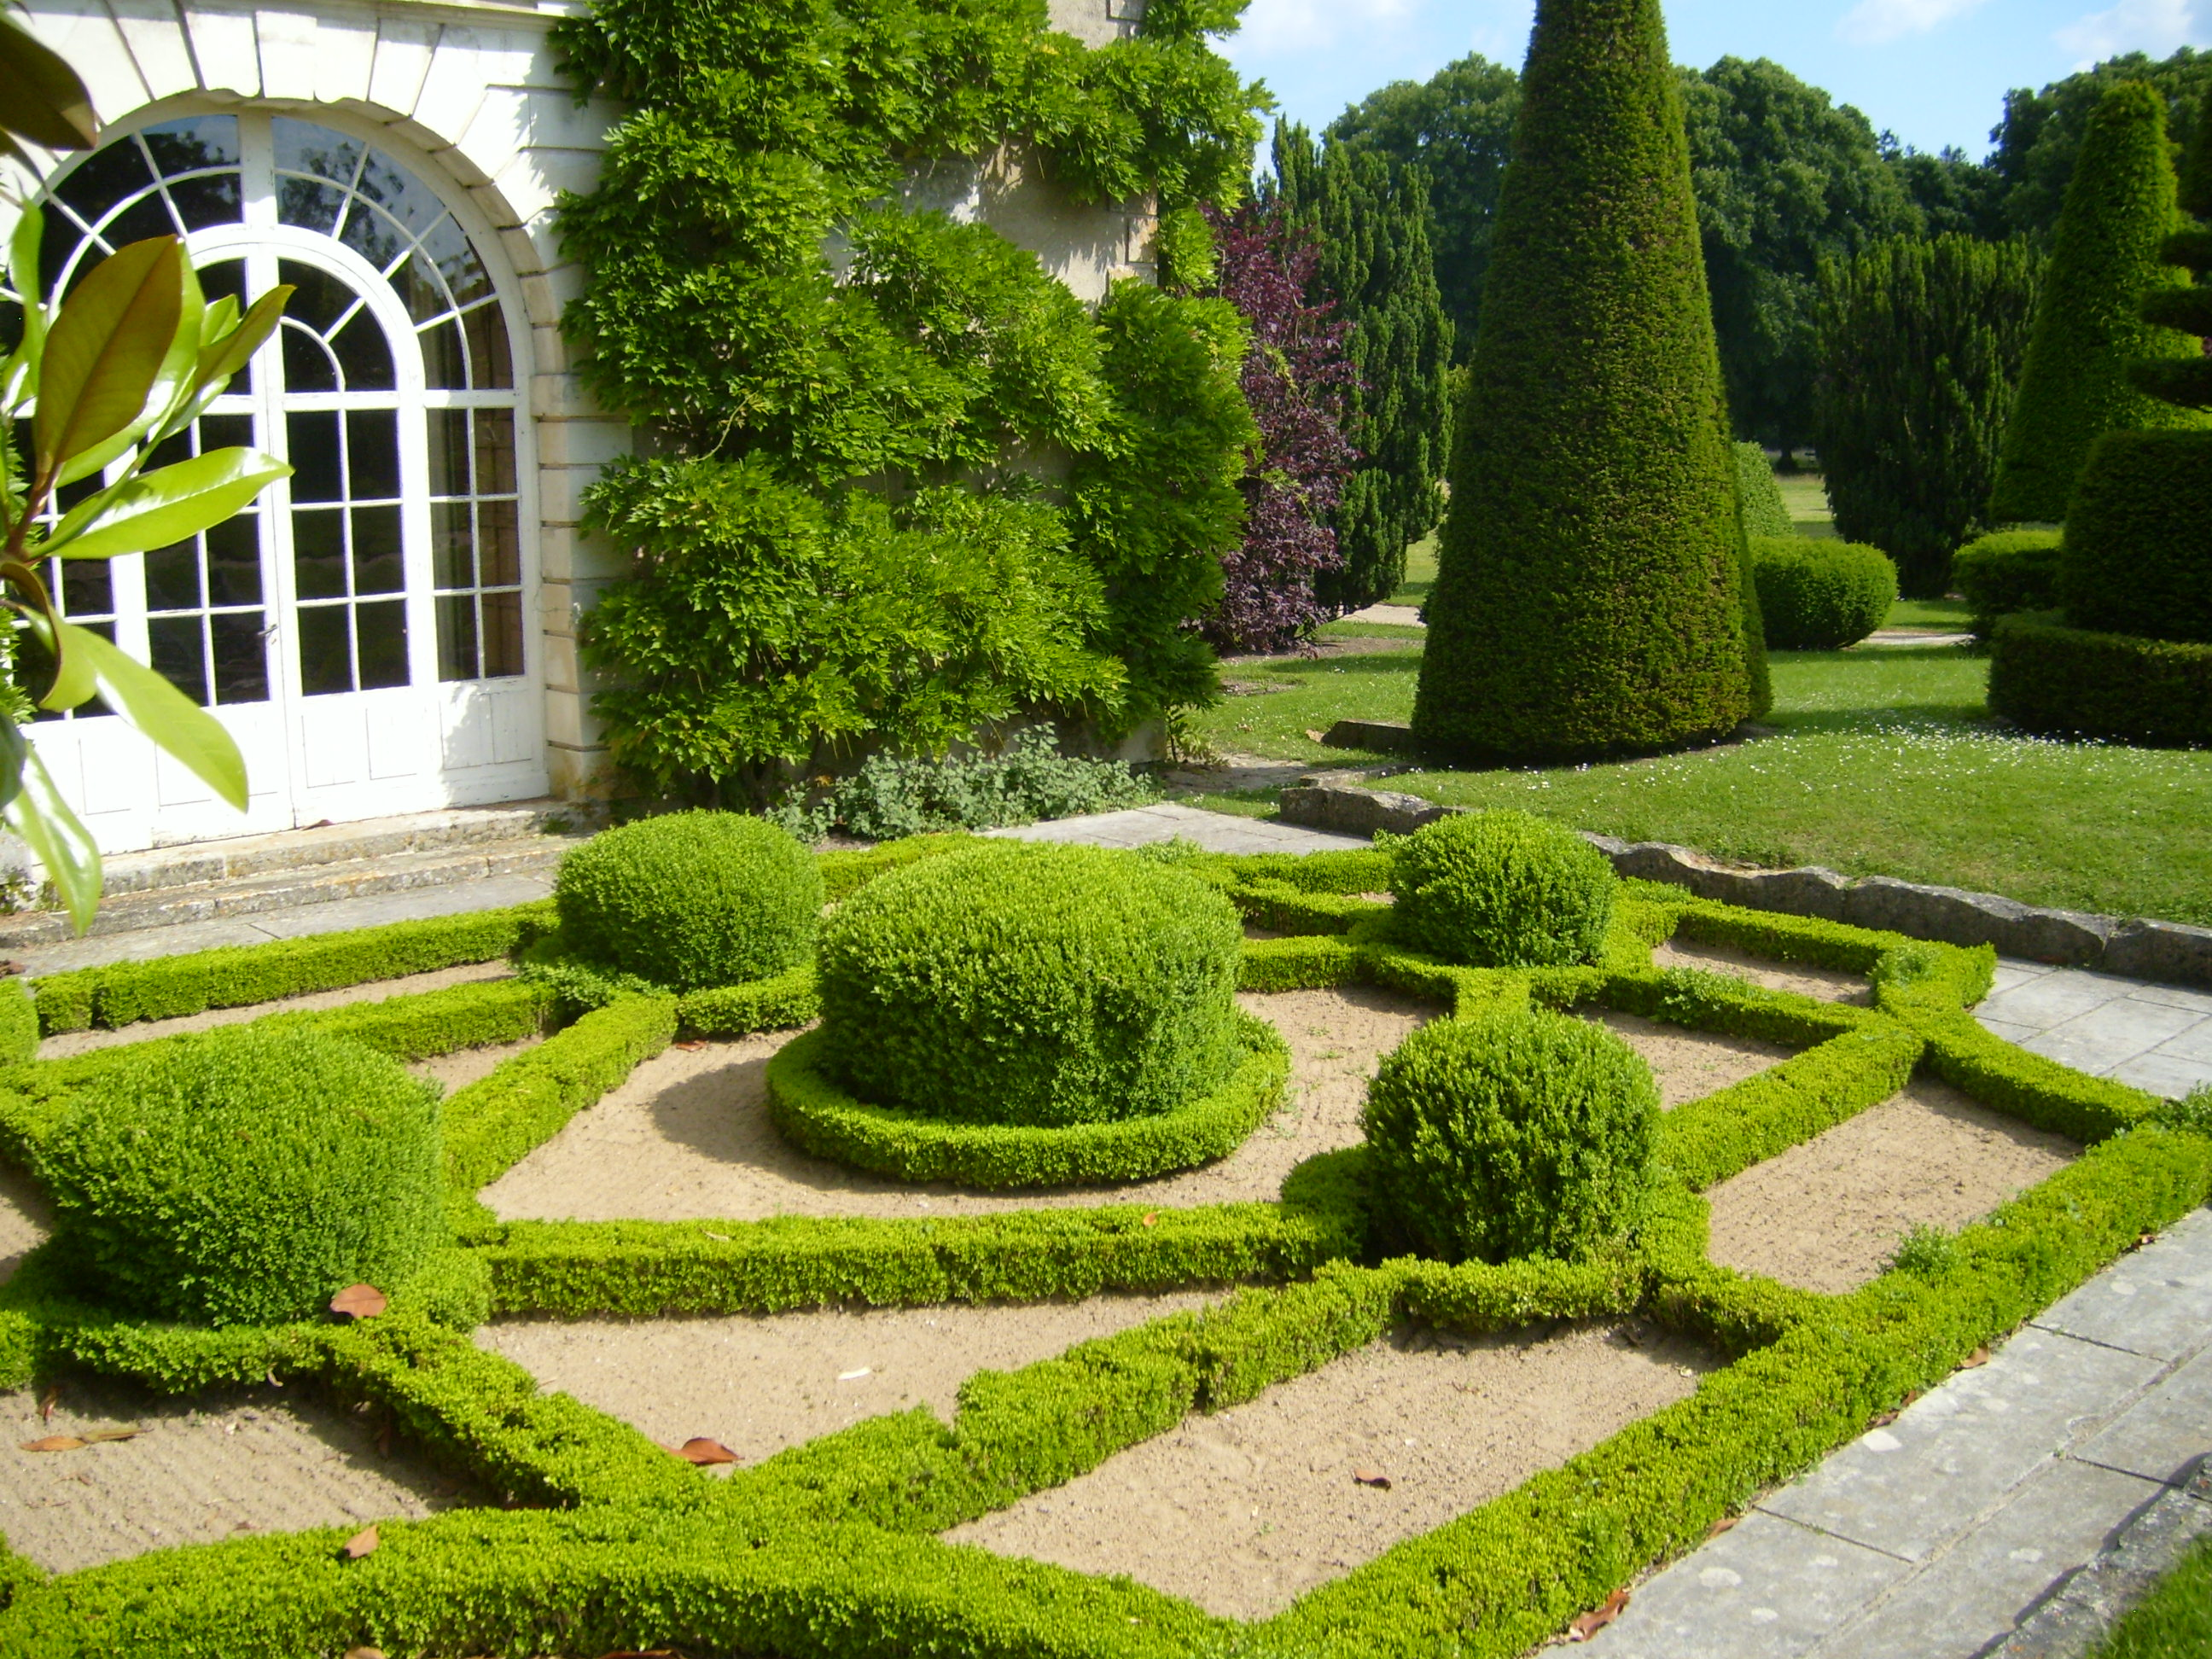 Garden-French-style-white-door-design-and-grass-with-special-form